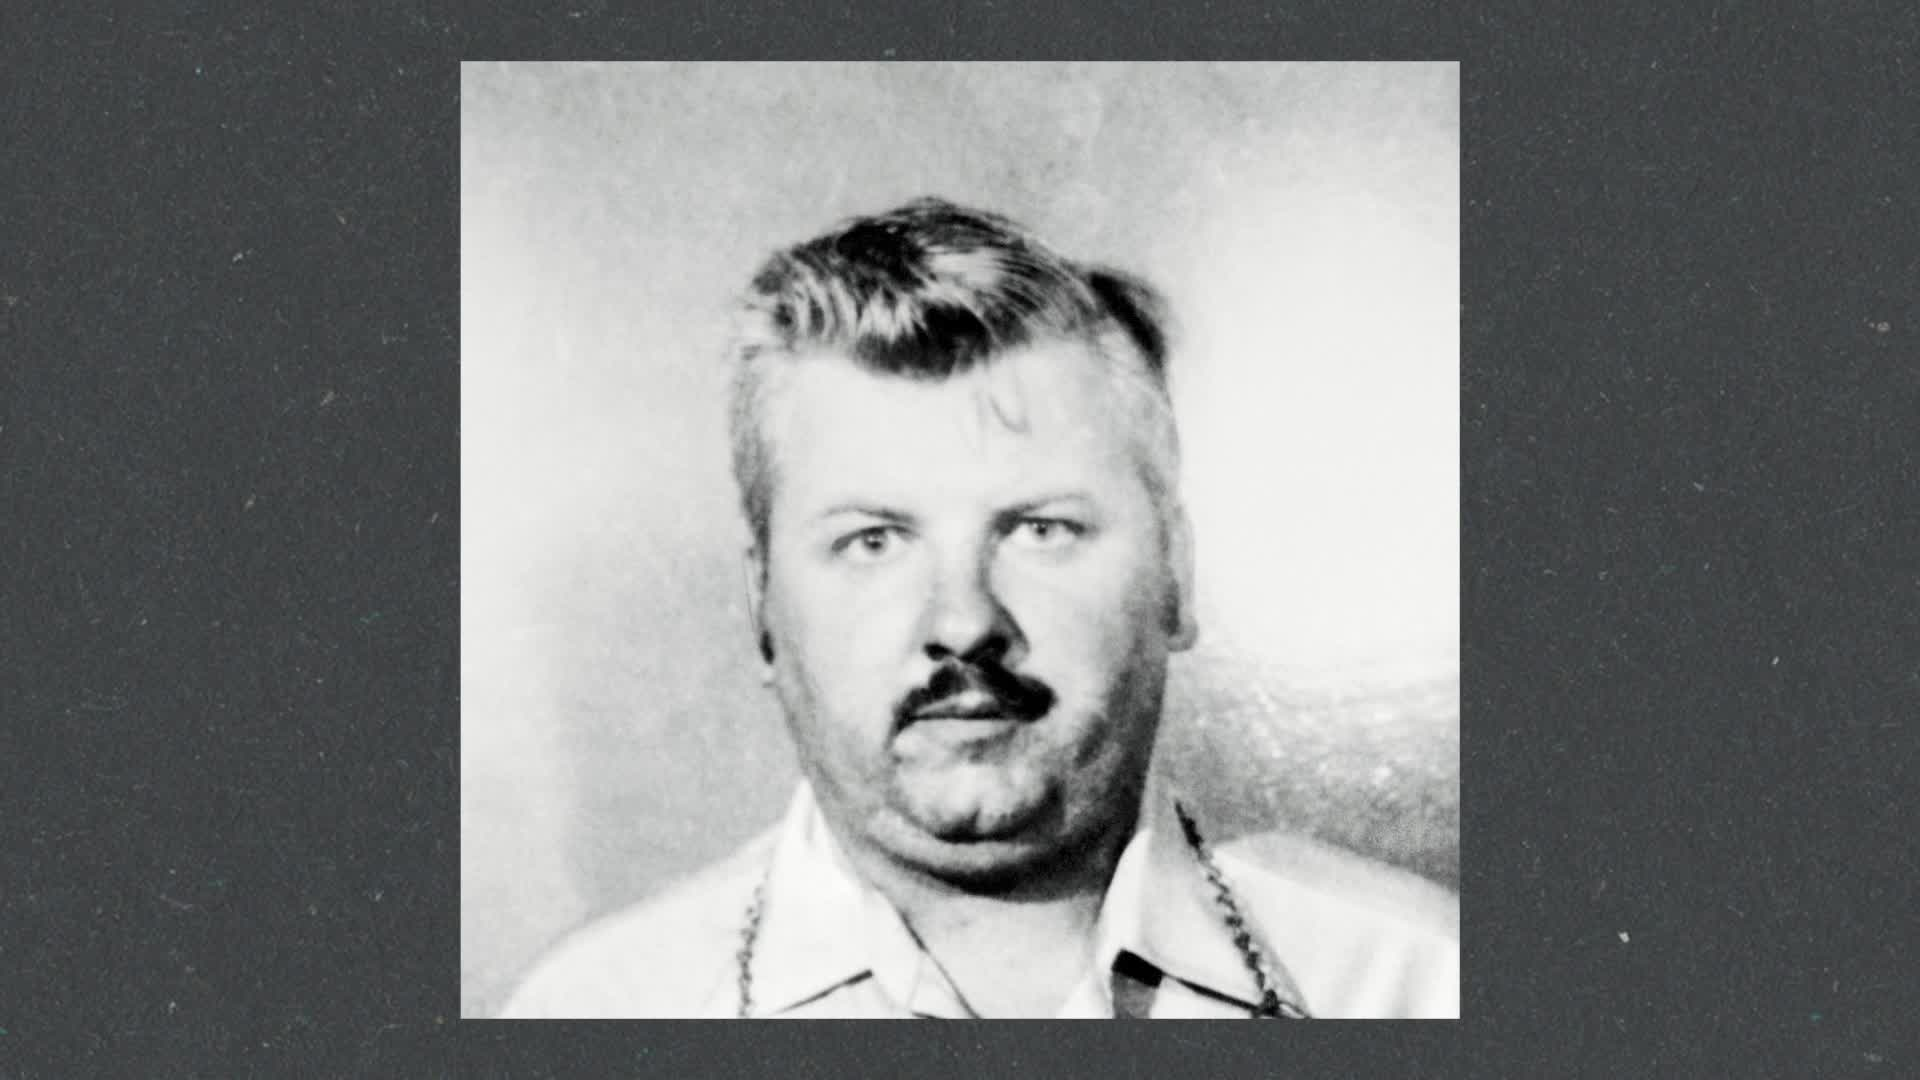 The John Wayne Gacy Case, Explained